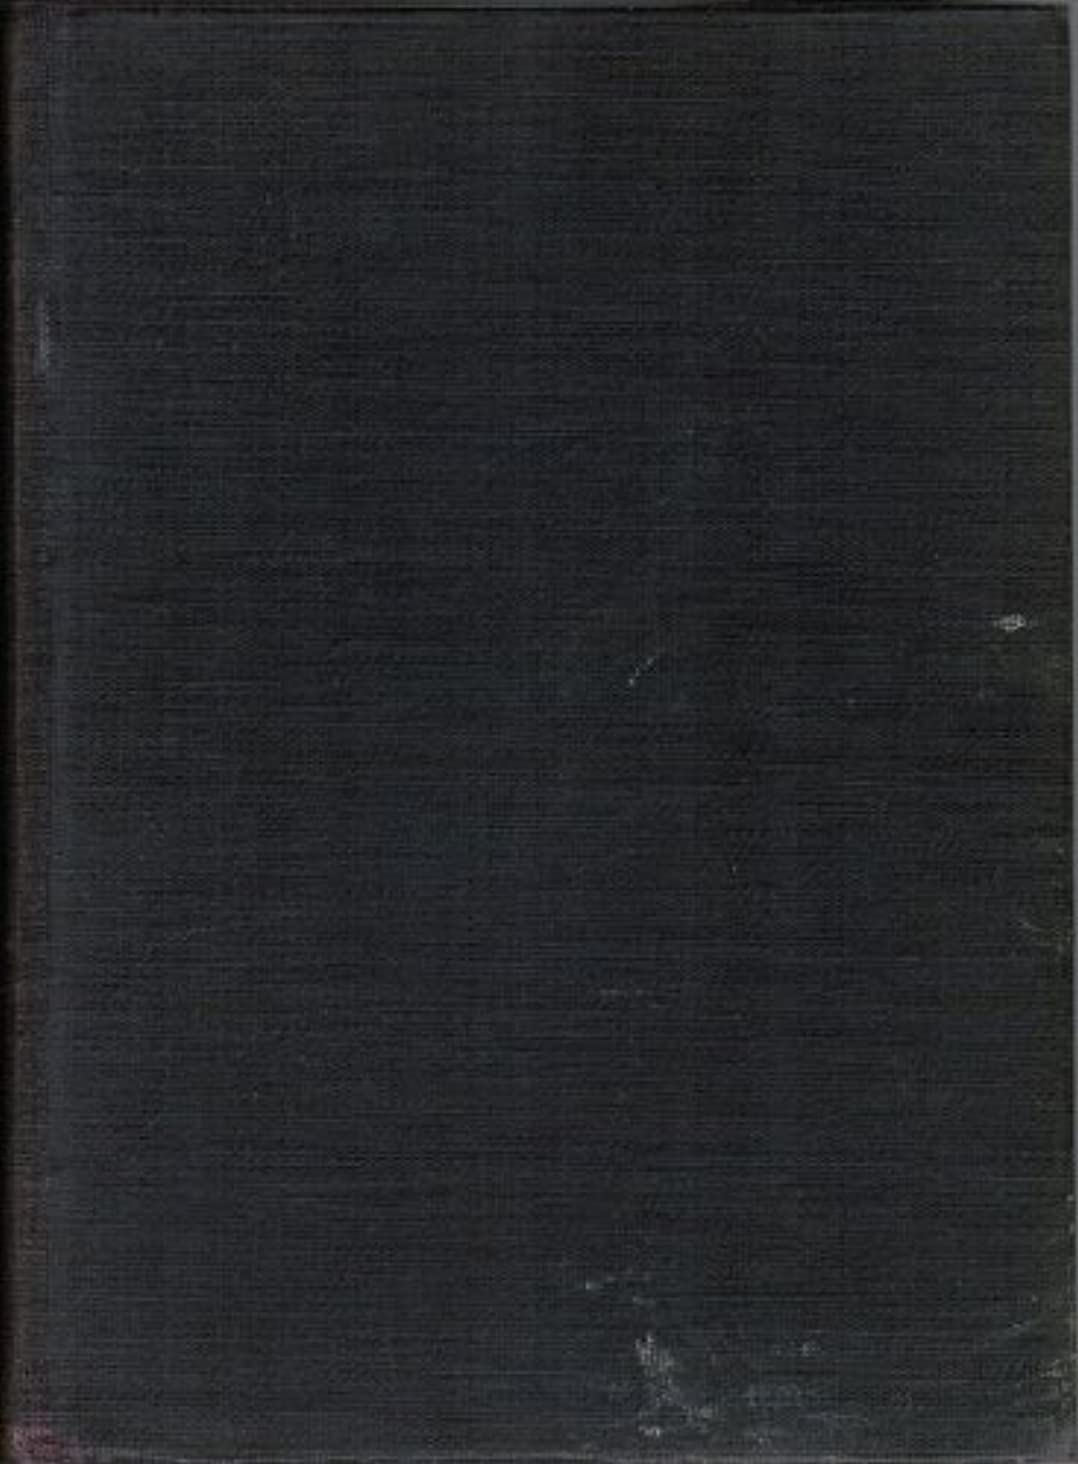 The Oxford Universal Dictionary